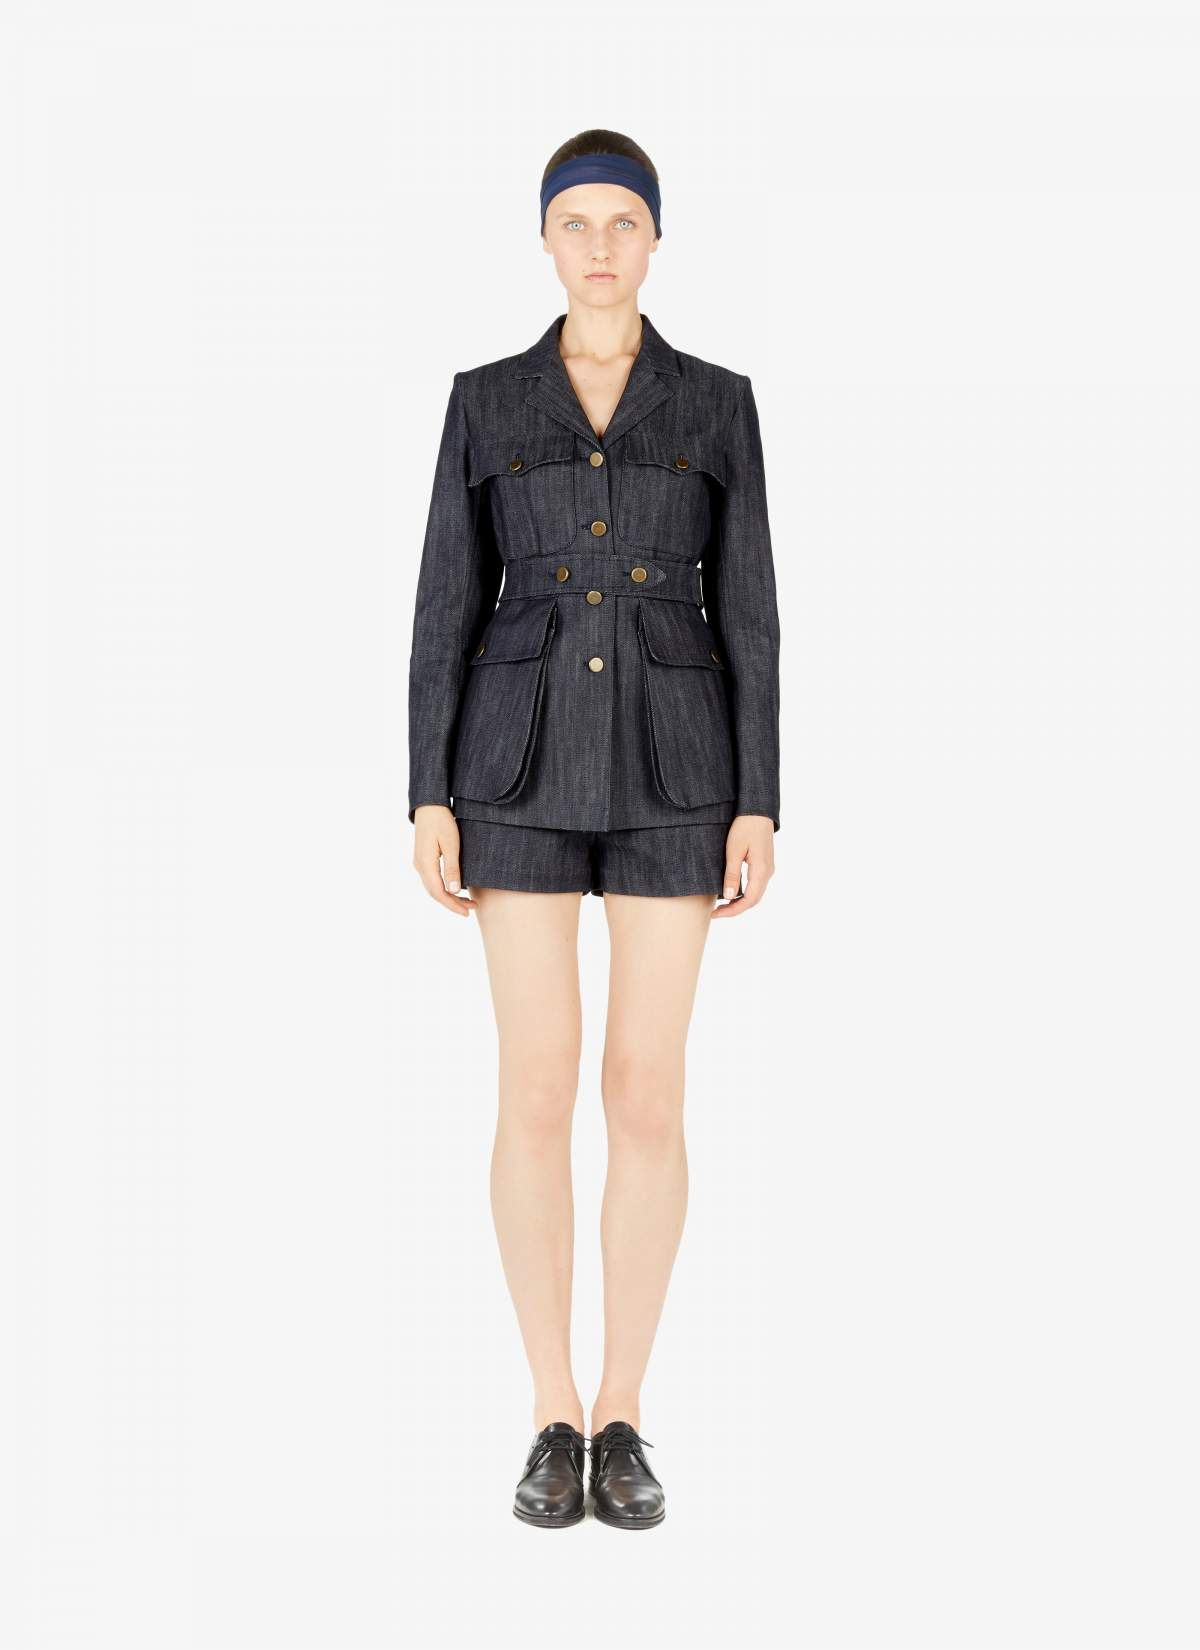 Edition 1990 by Alaia, available on maison-alaia.com for $3437 Kylie Jenner Outerwear SIMILAR PRODUCT